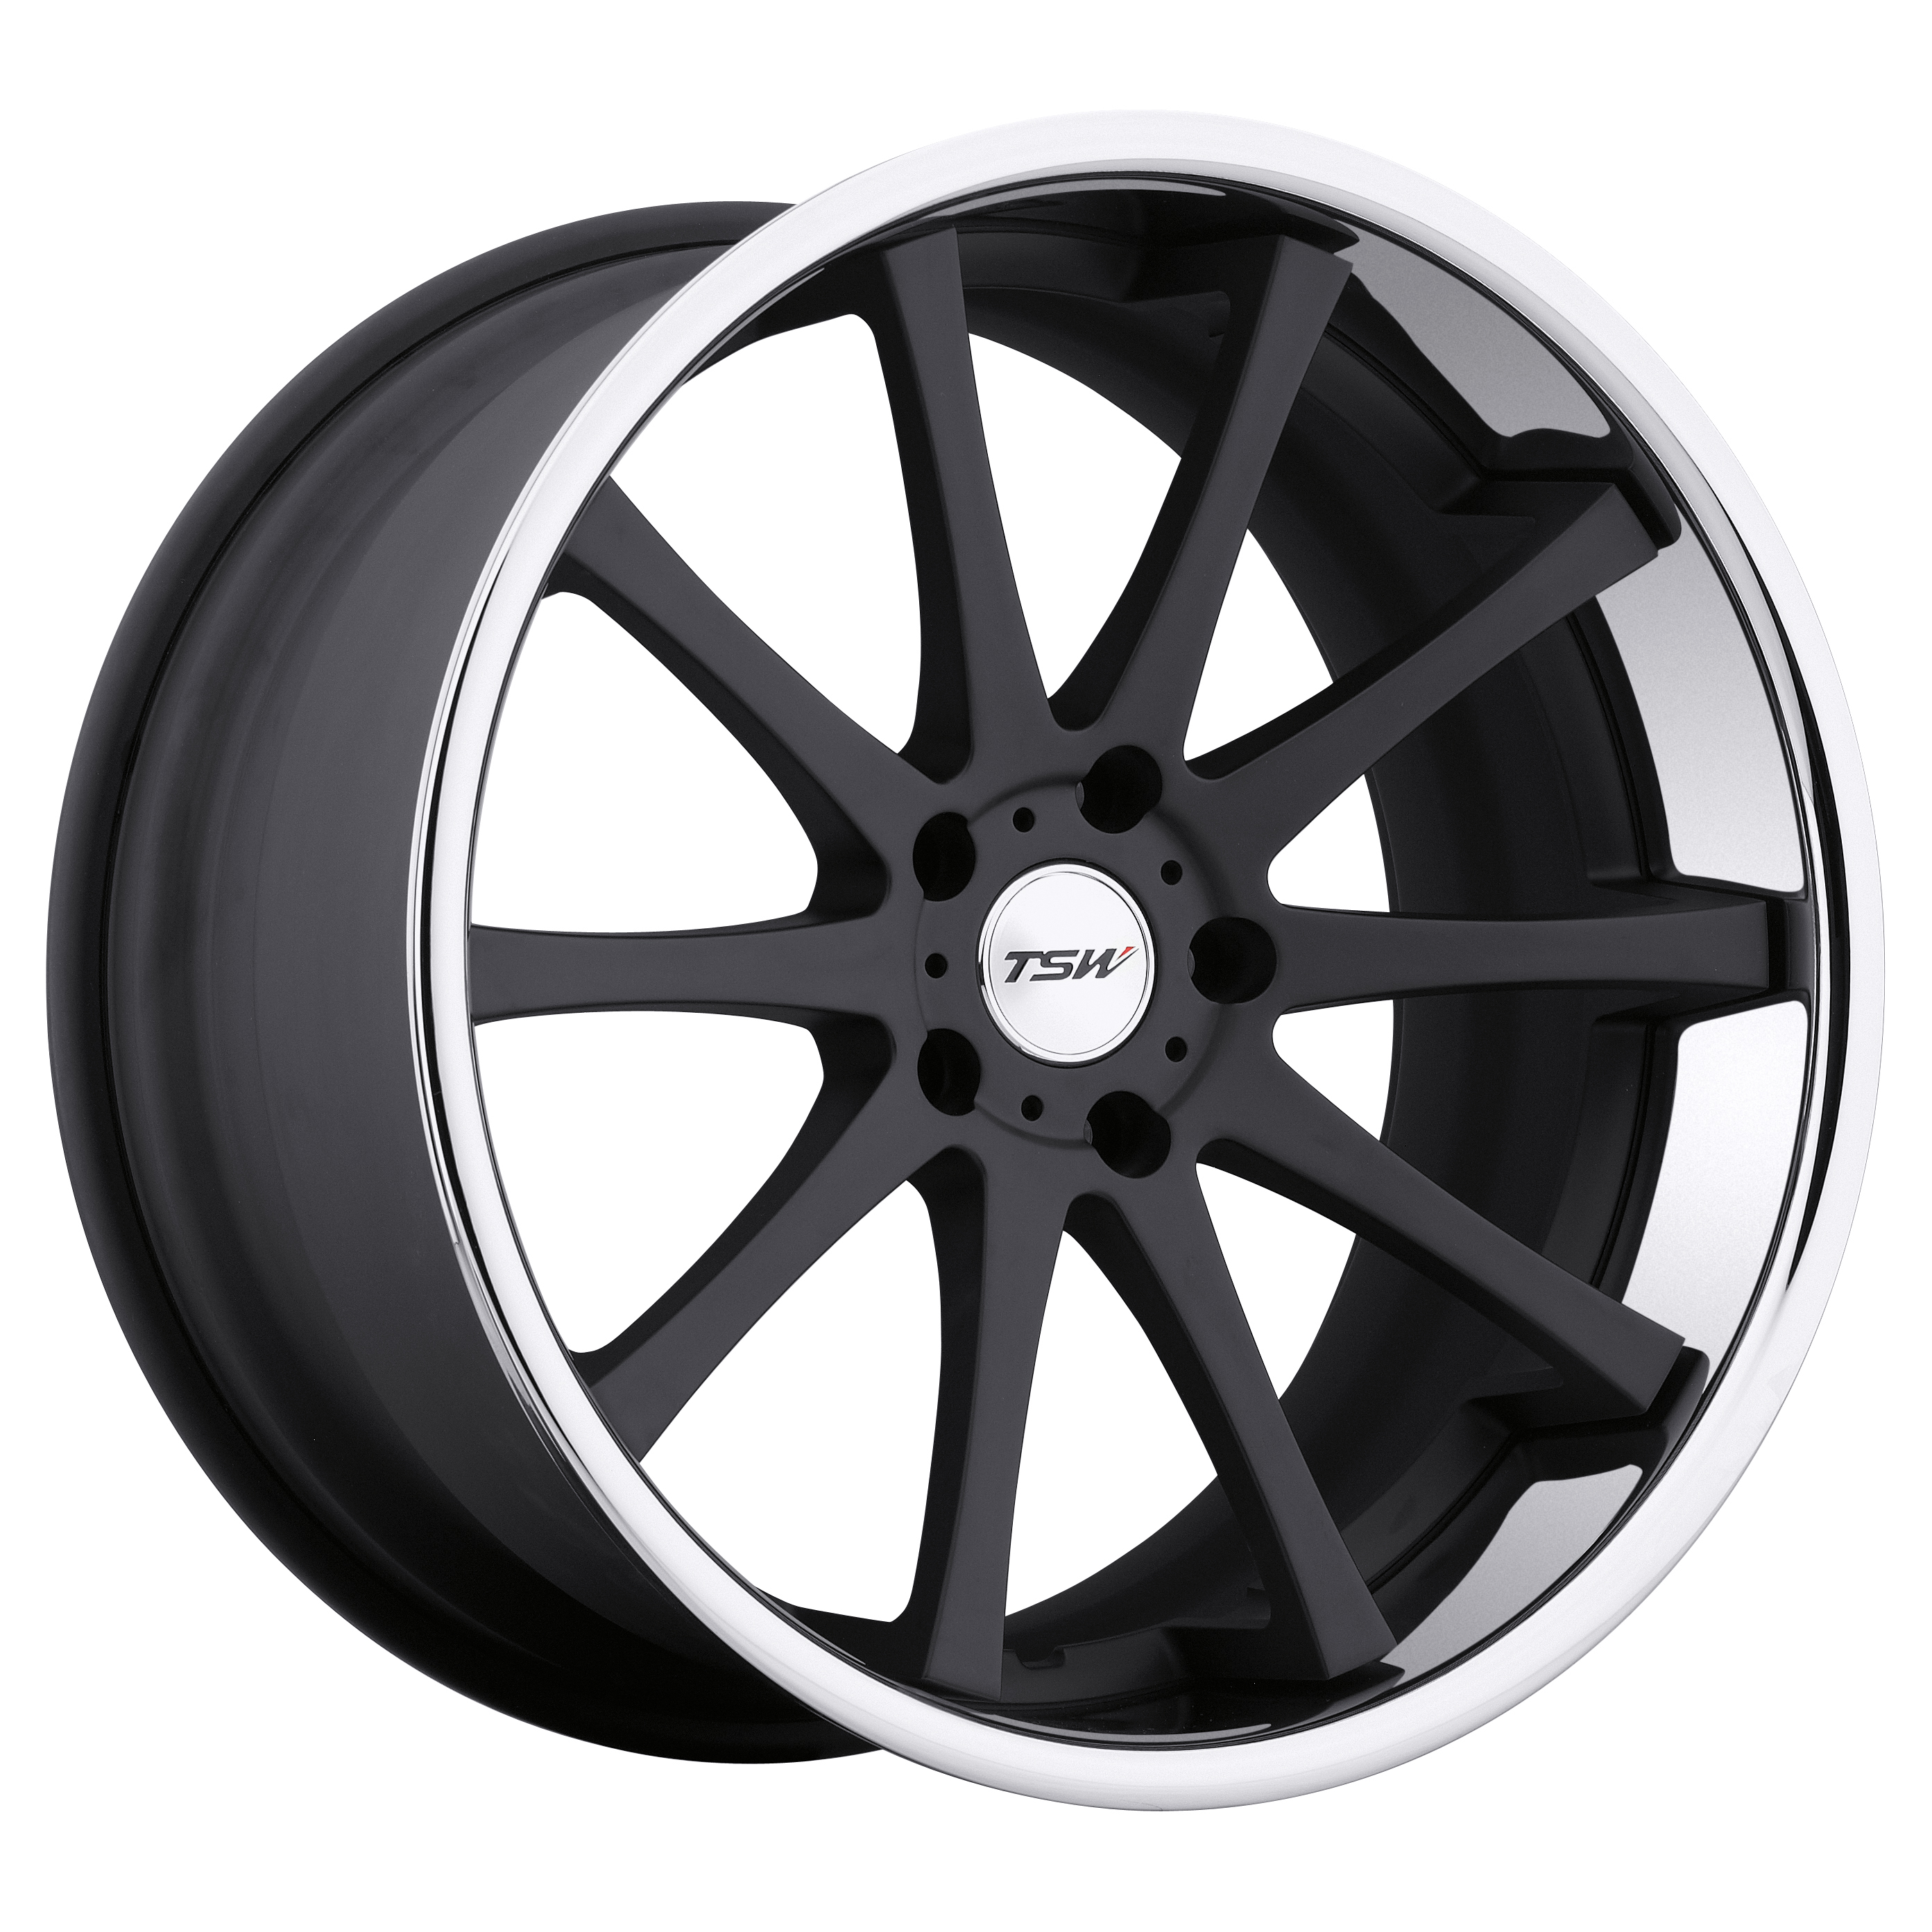 Mandrus Wheels, Exclusively for Mercedes Benz Vehicles